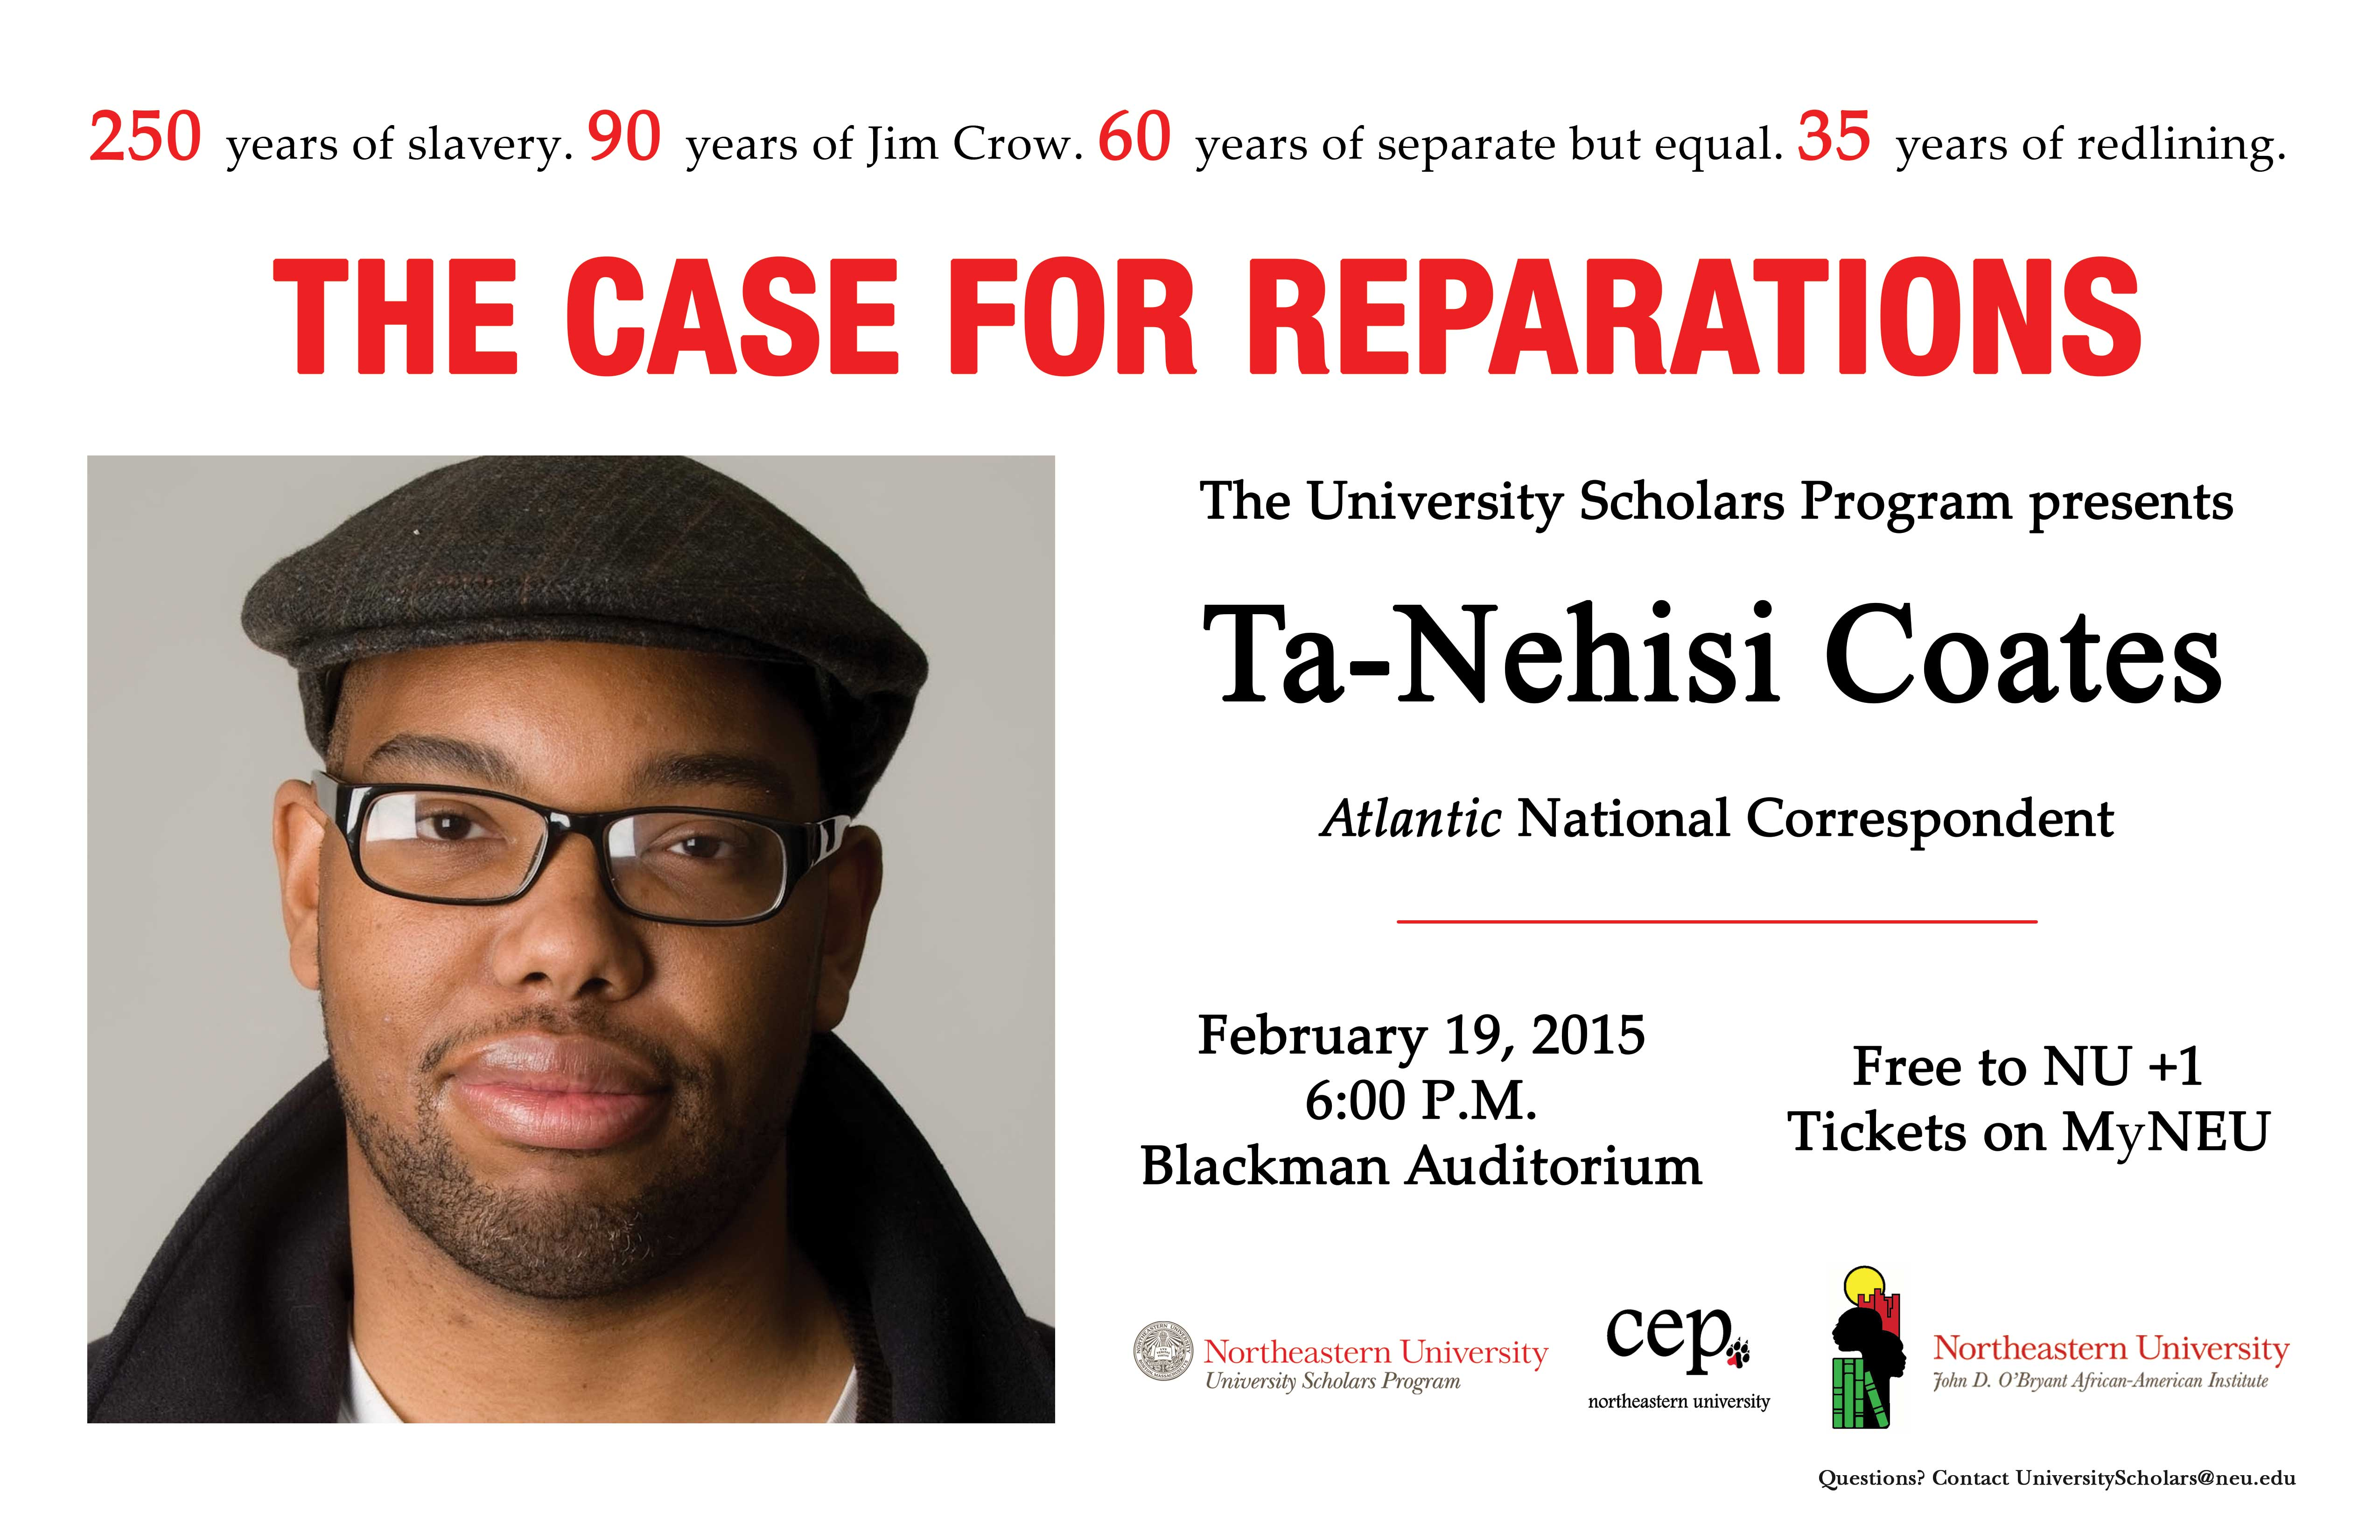 """an analysis of the case for reparations an article by ta nehisi coates Between the world and me is ta-nehisi coates's attempt to answer these  and  the george polk award for his atlantic cover story """"the case for reparations   standards"""" section of this guide, the prompts provide for a critical analysis of."""